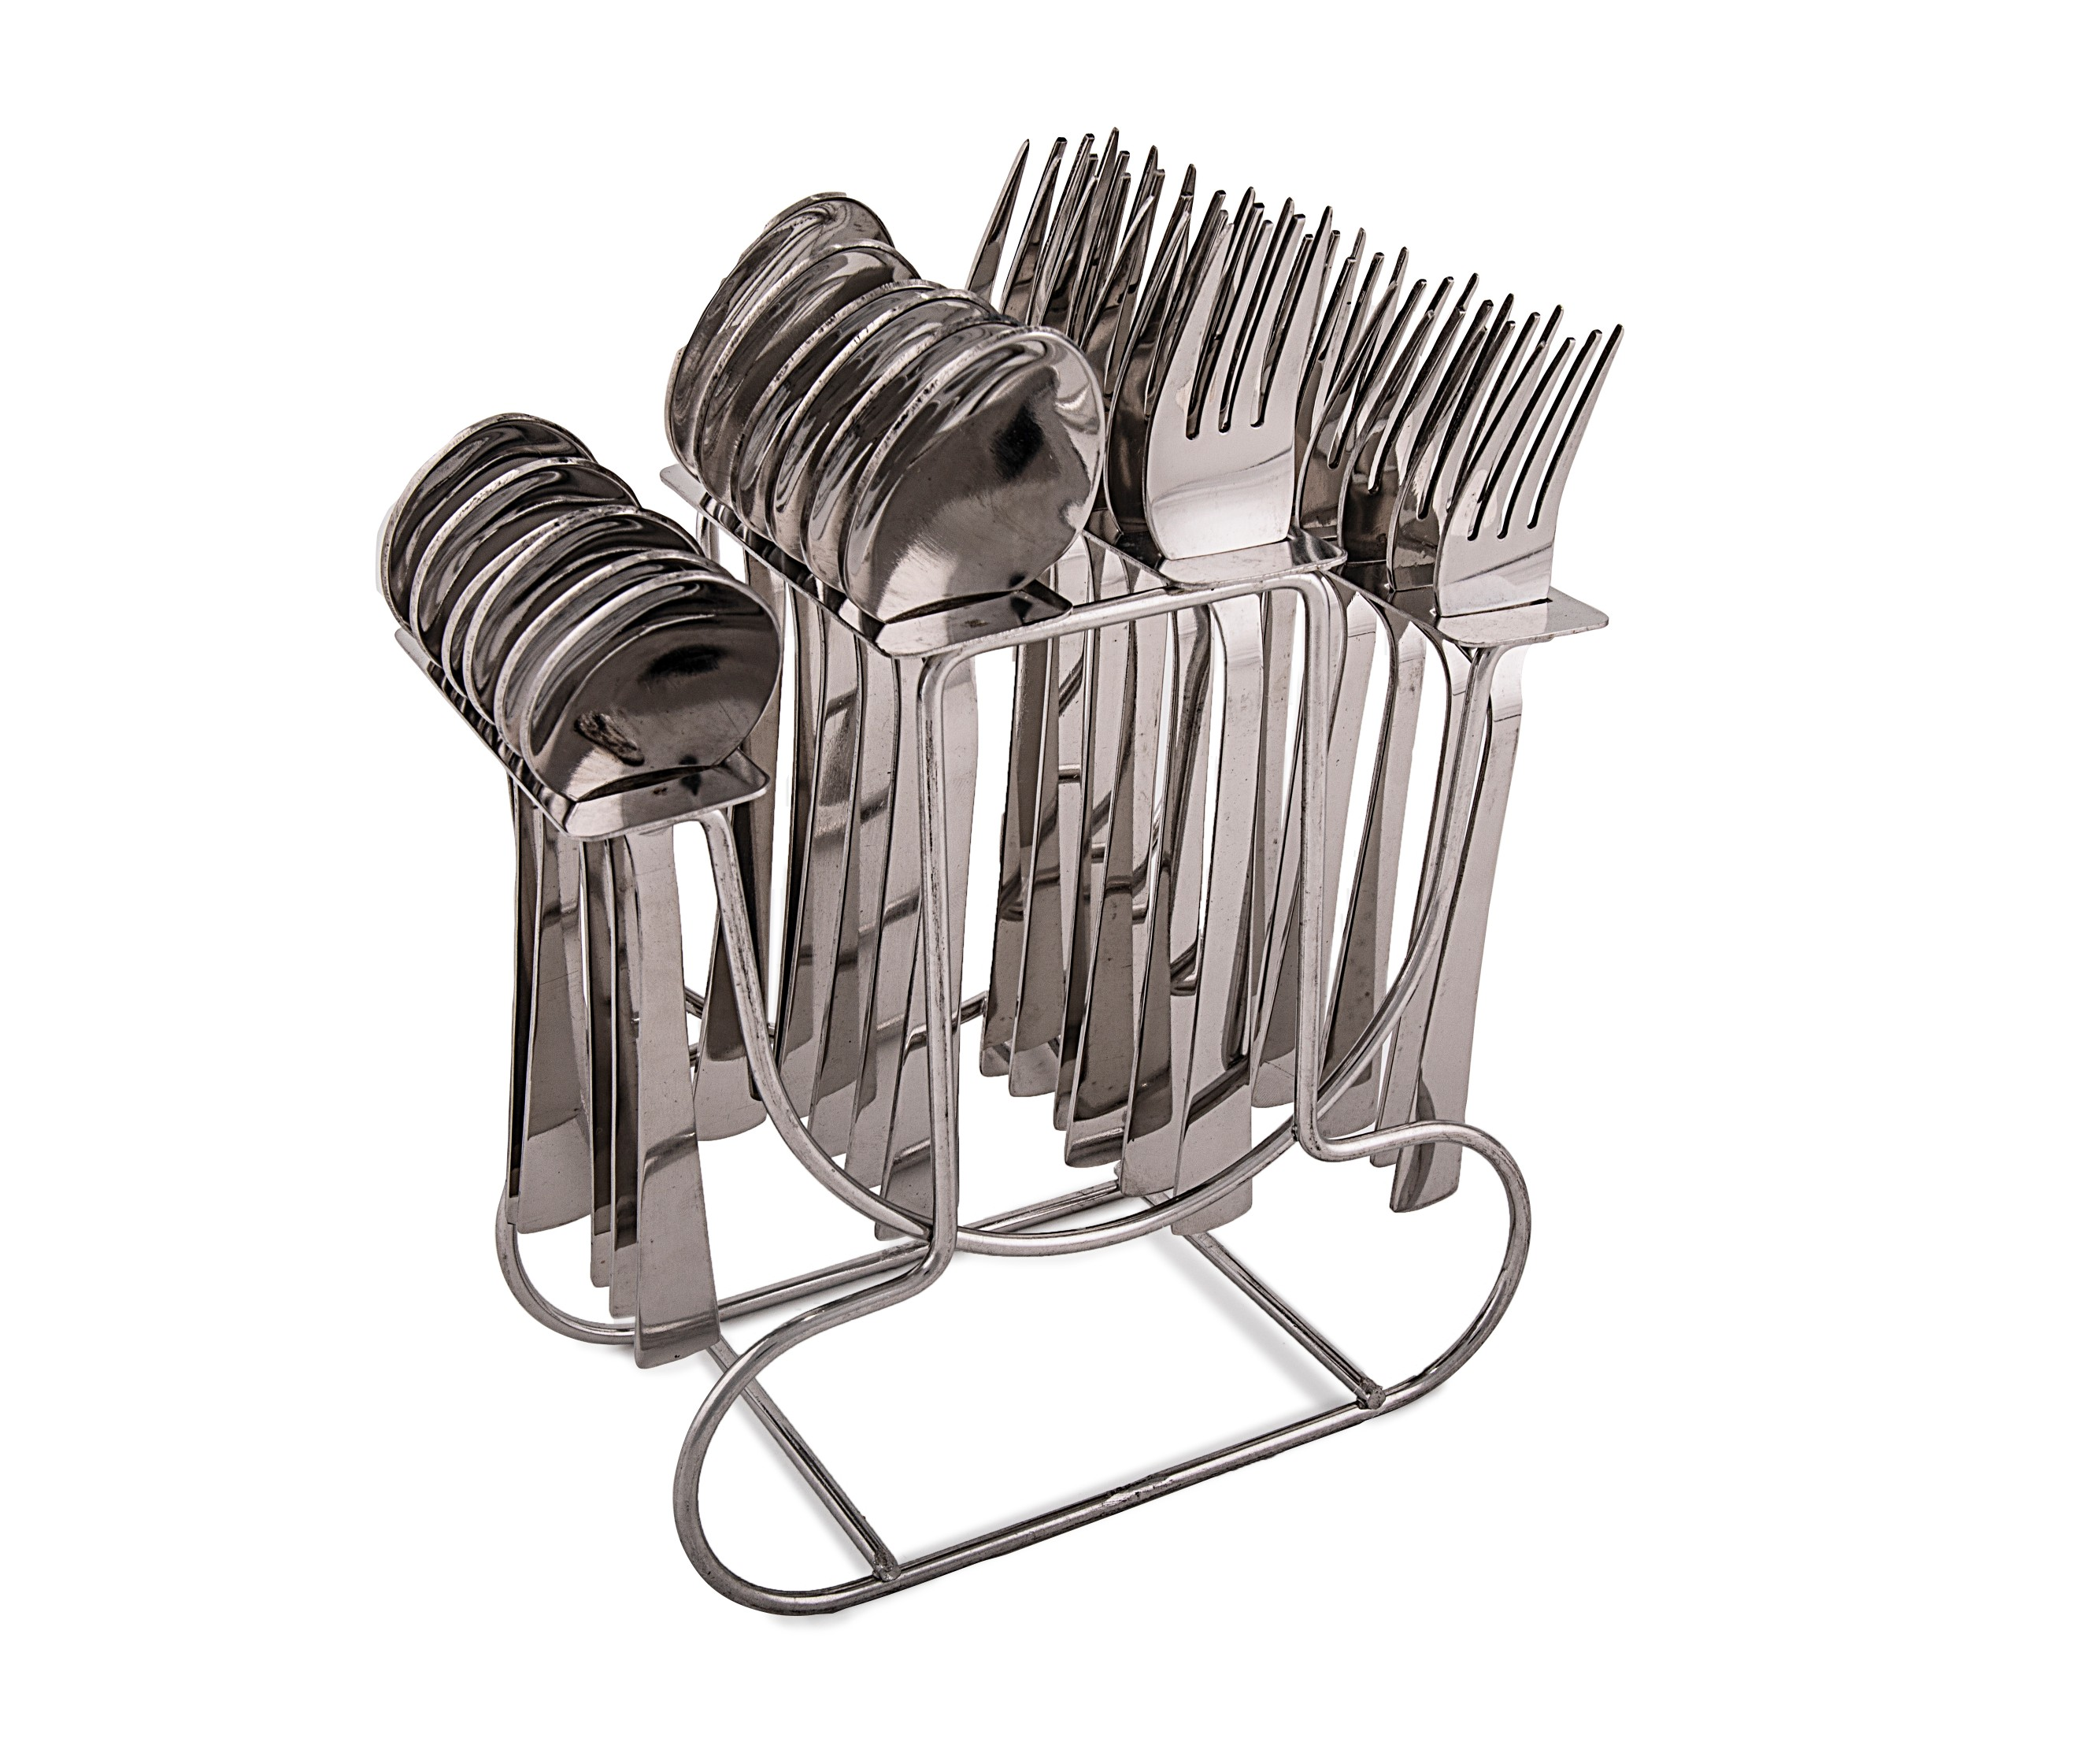 24 Pcs with stand Stainless steel Cutlery Sets in Silver Colour by Living Essence